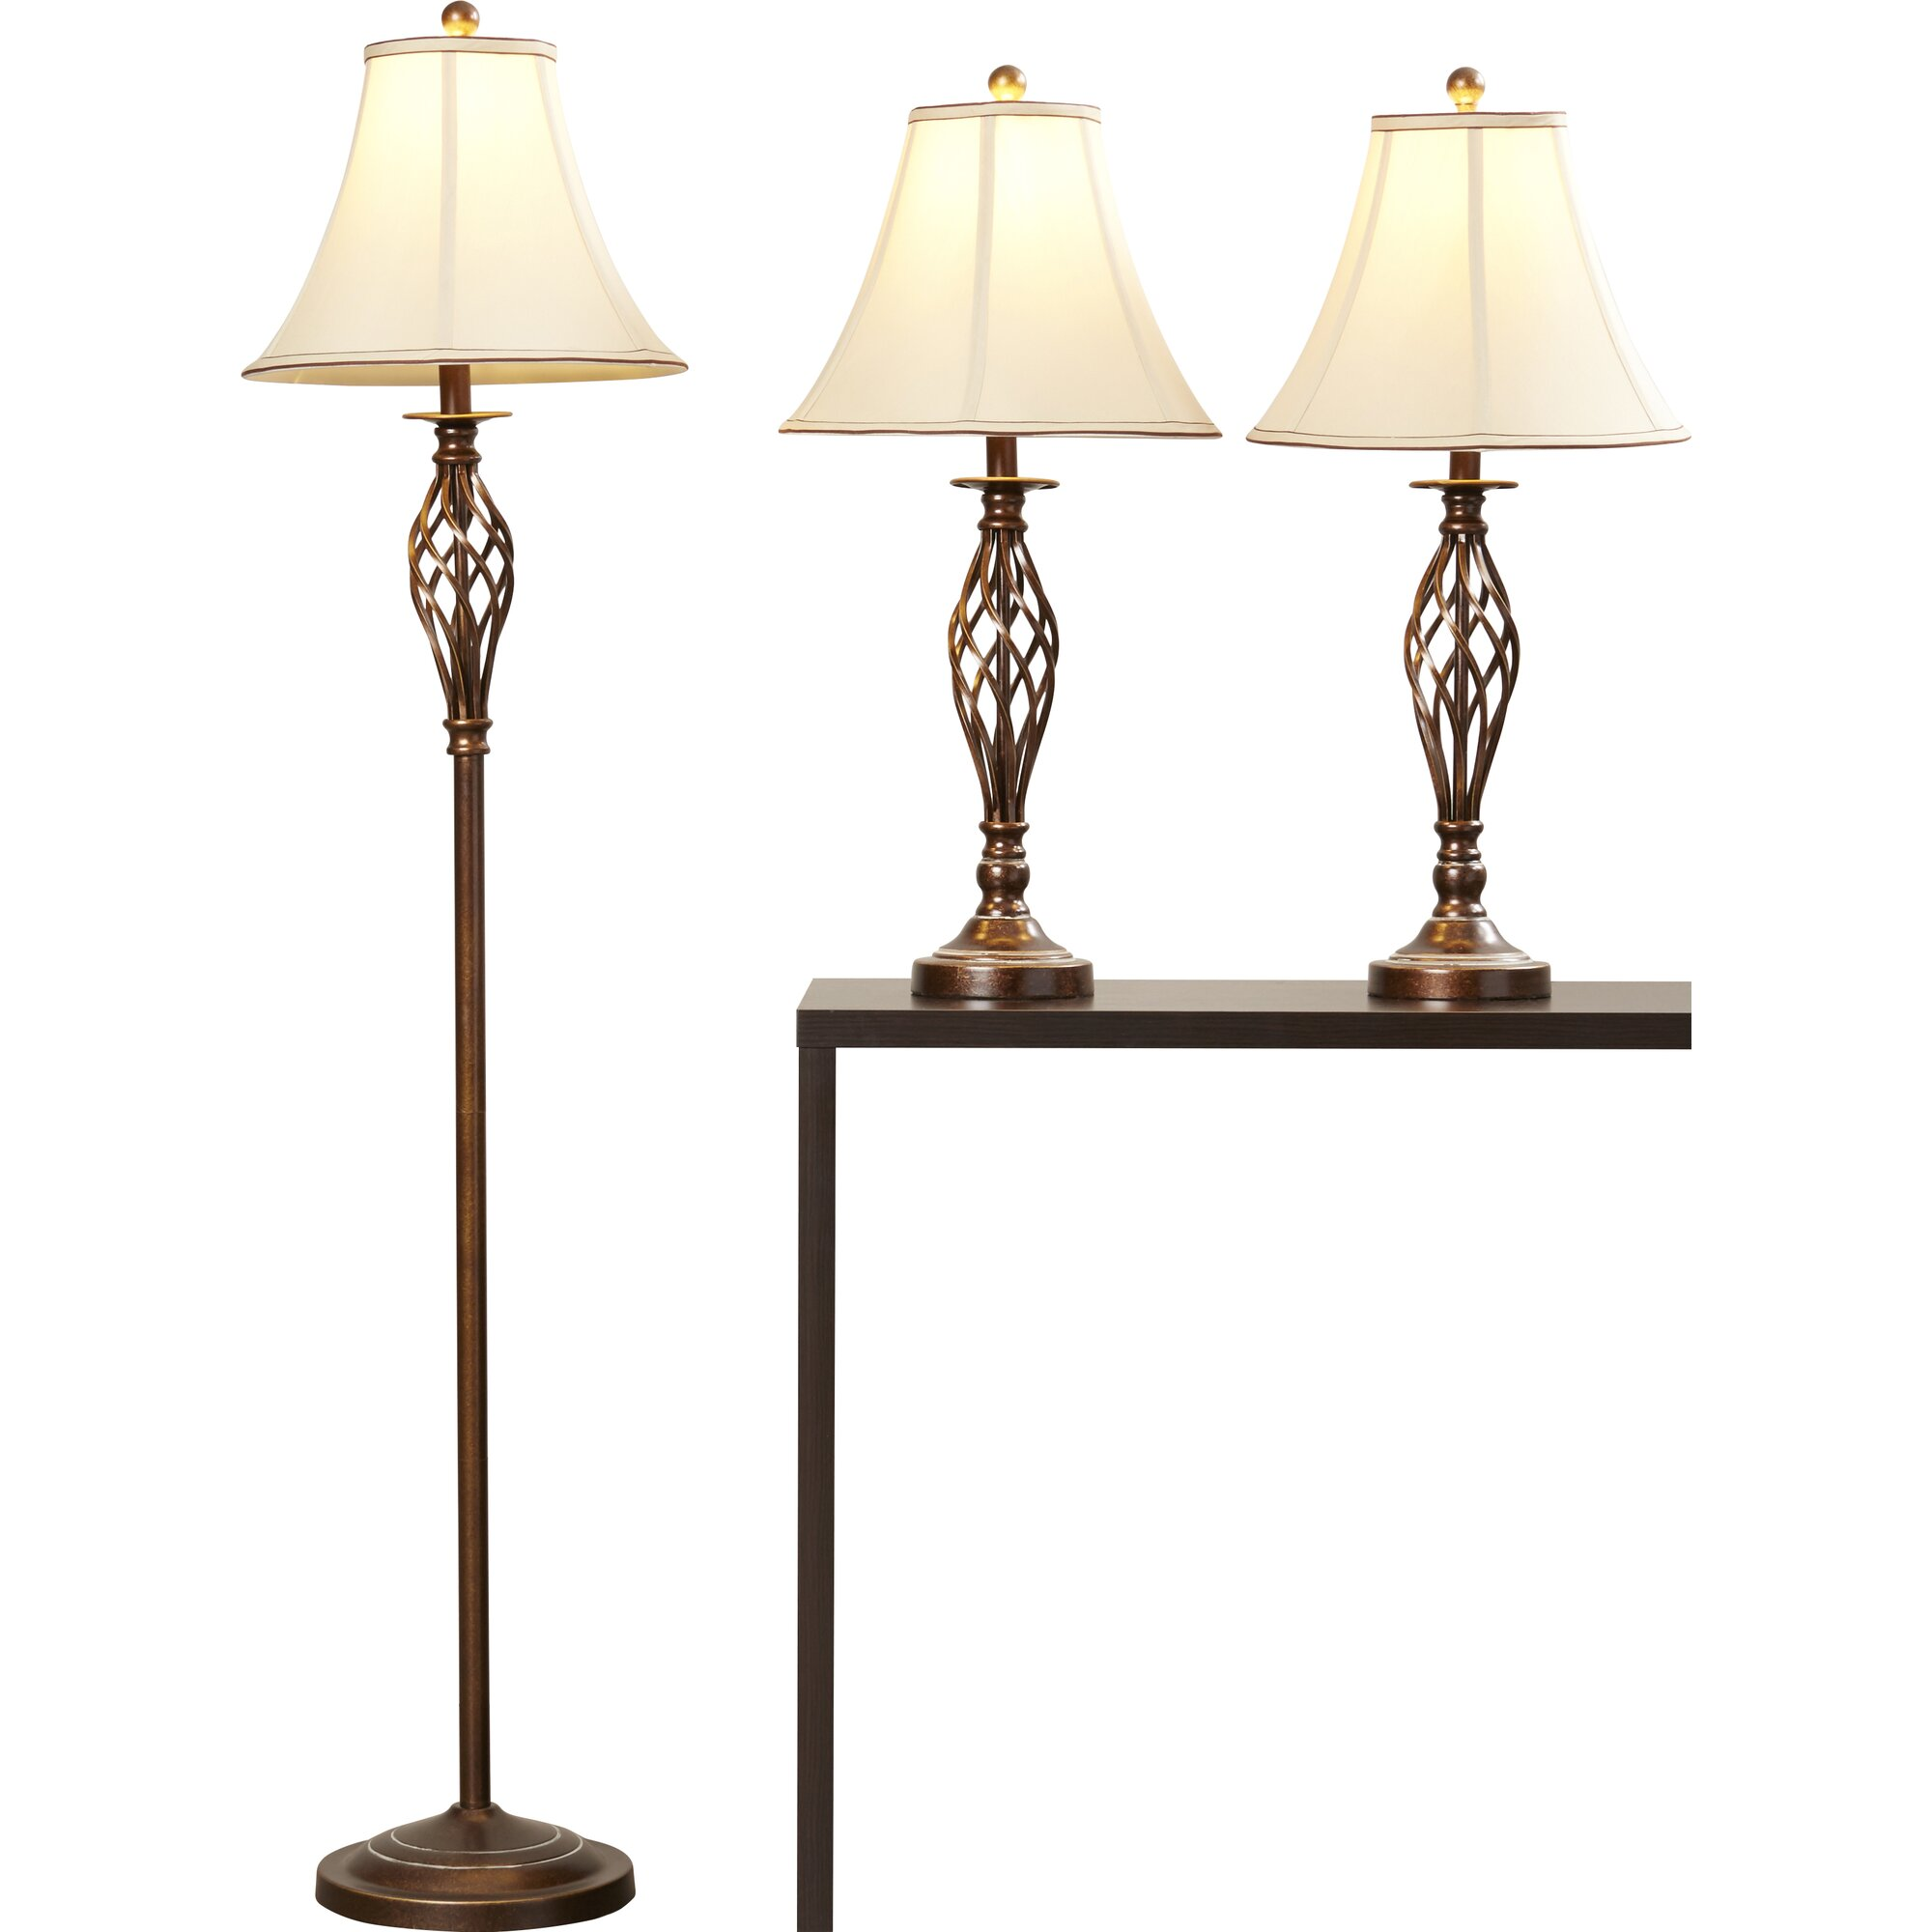 Andover Mills Ignatius 3 Piece Table Lamp and Floor Lamp  : Ignatius3PieceTableLampandFloorLampSet from www.wayfair.ca size 2000 x 2000 jpeg 135kB